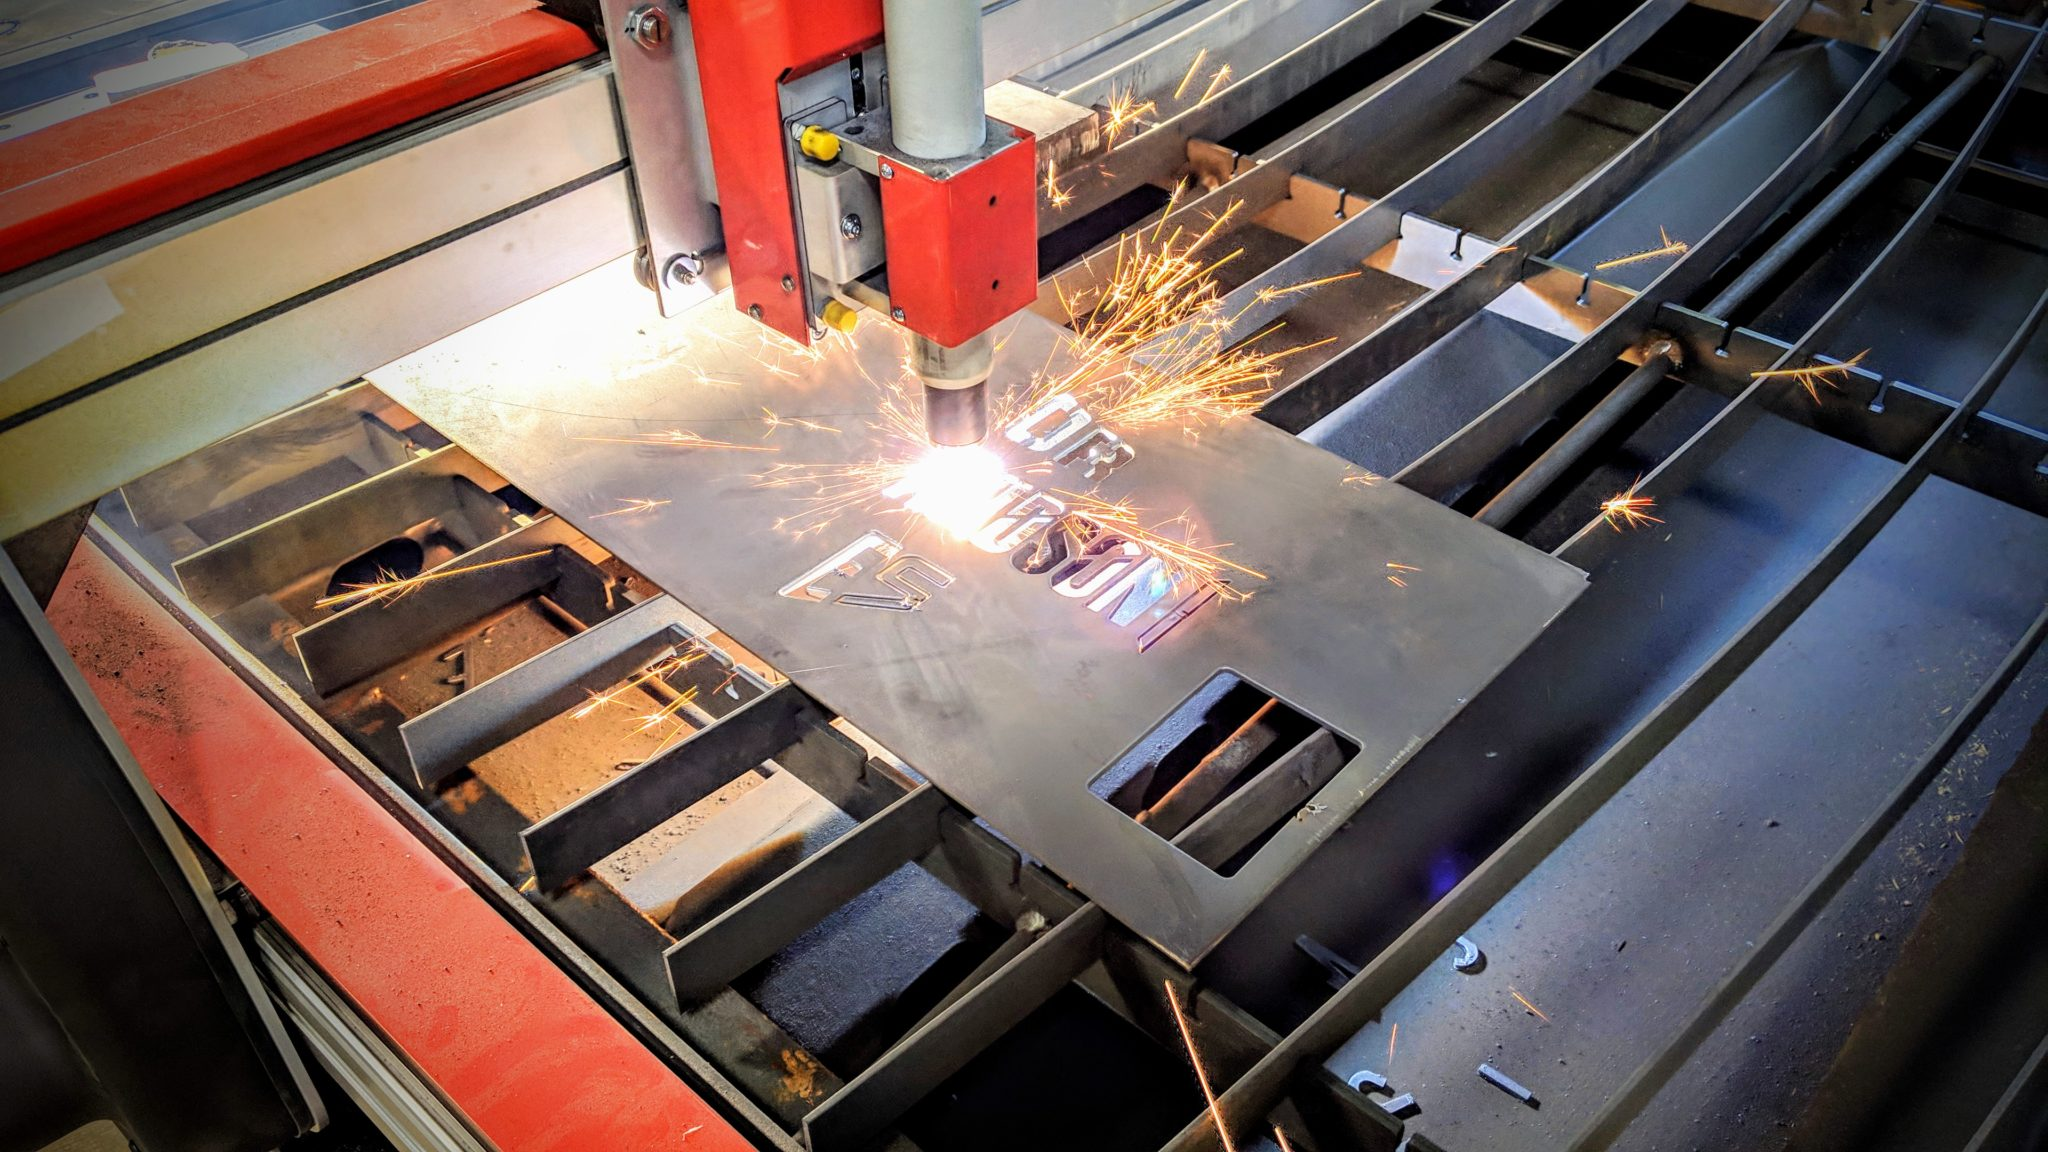 Ble.CH Messe Bern demonstration of the Swift-Cut machine cutting the metal with sparks